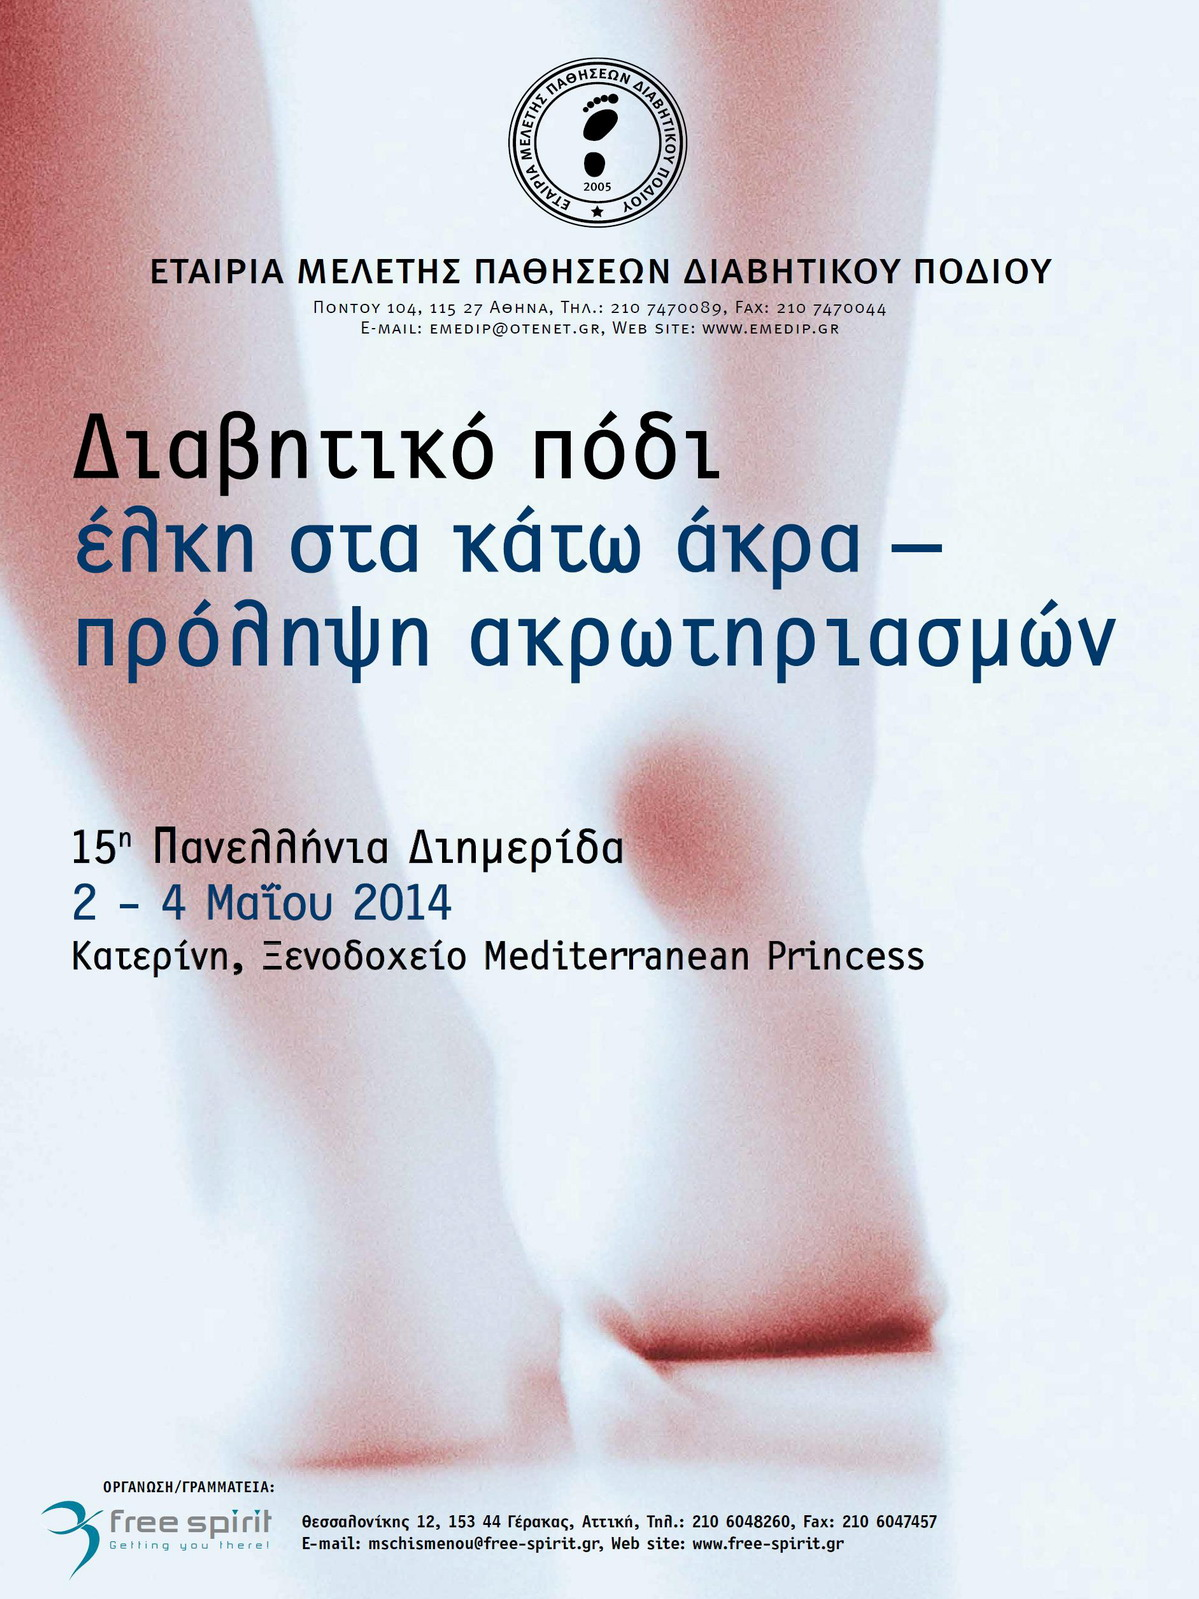 15th Panhellenic Meeting of the Hellenic Association for the Study of Diabetic Foot Disease